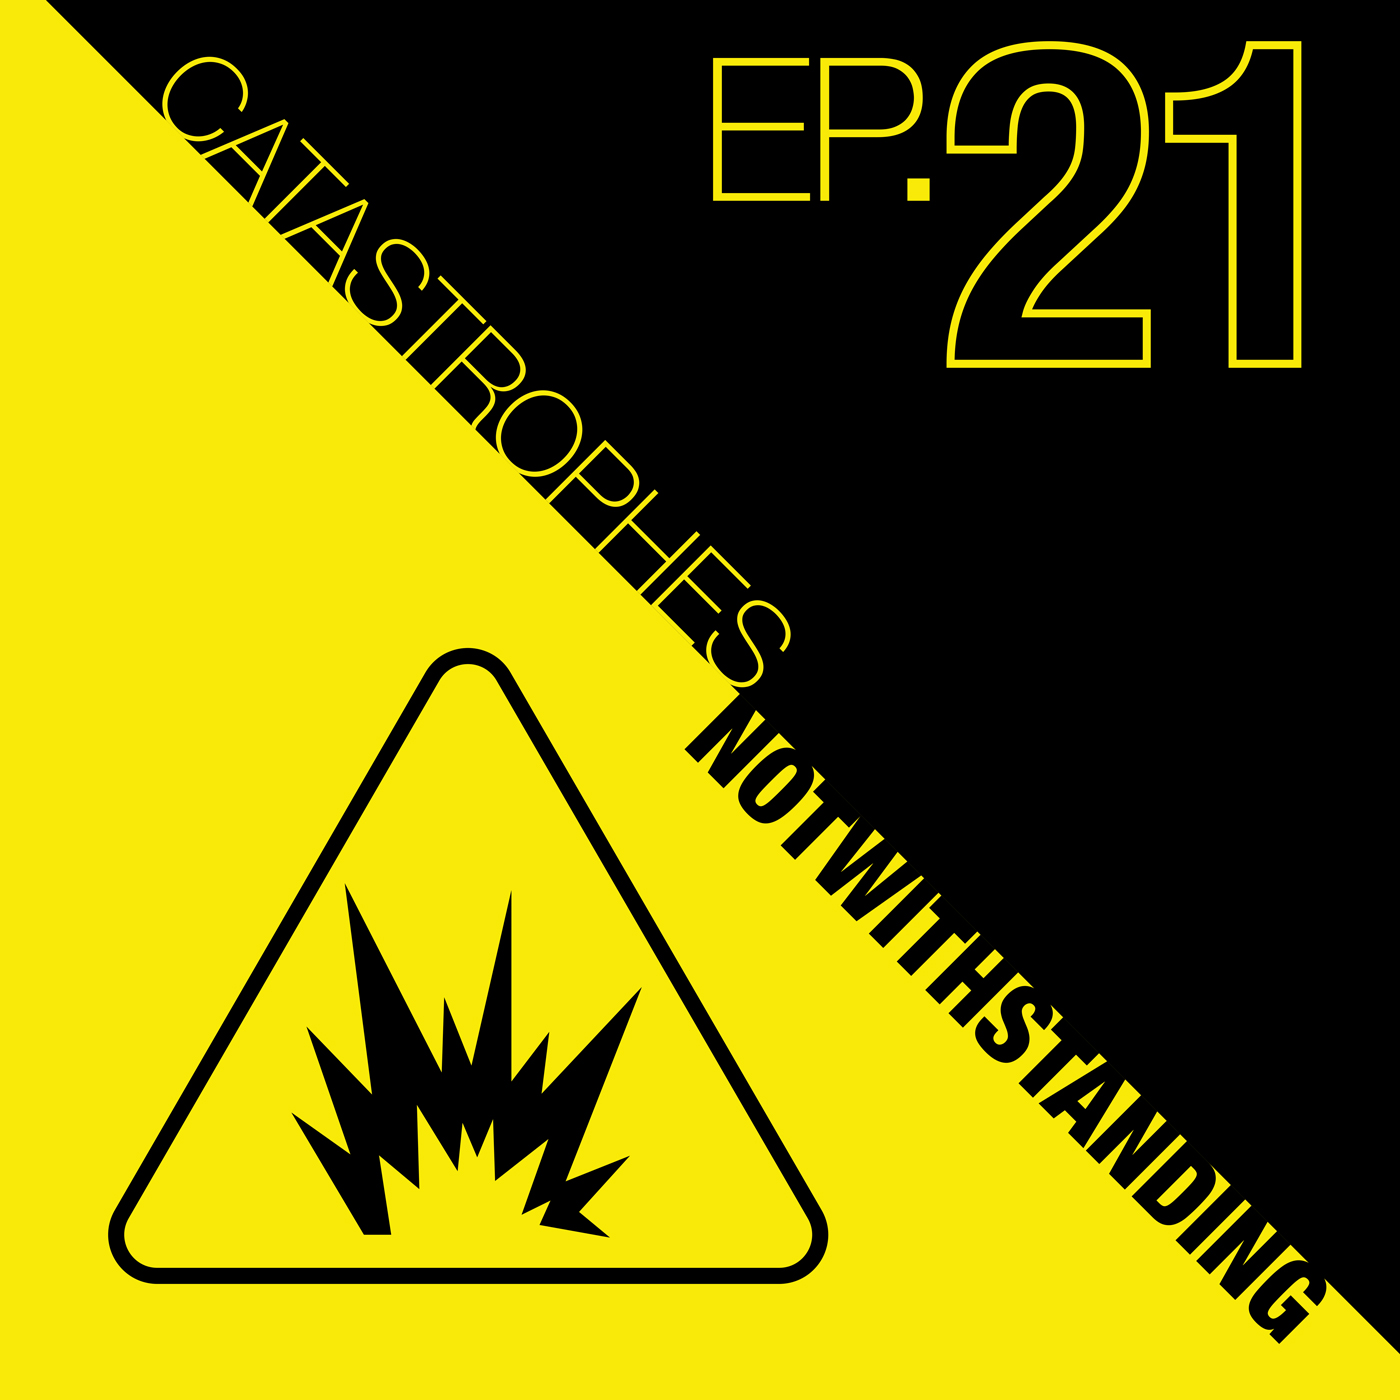 Cover Image of Catastrophes Notwithstanding Episode 21